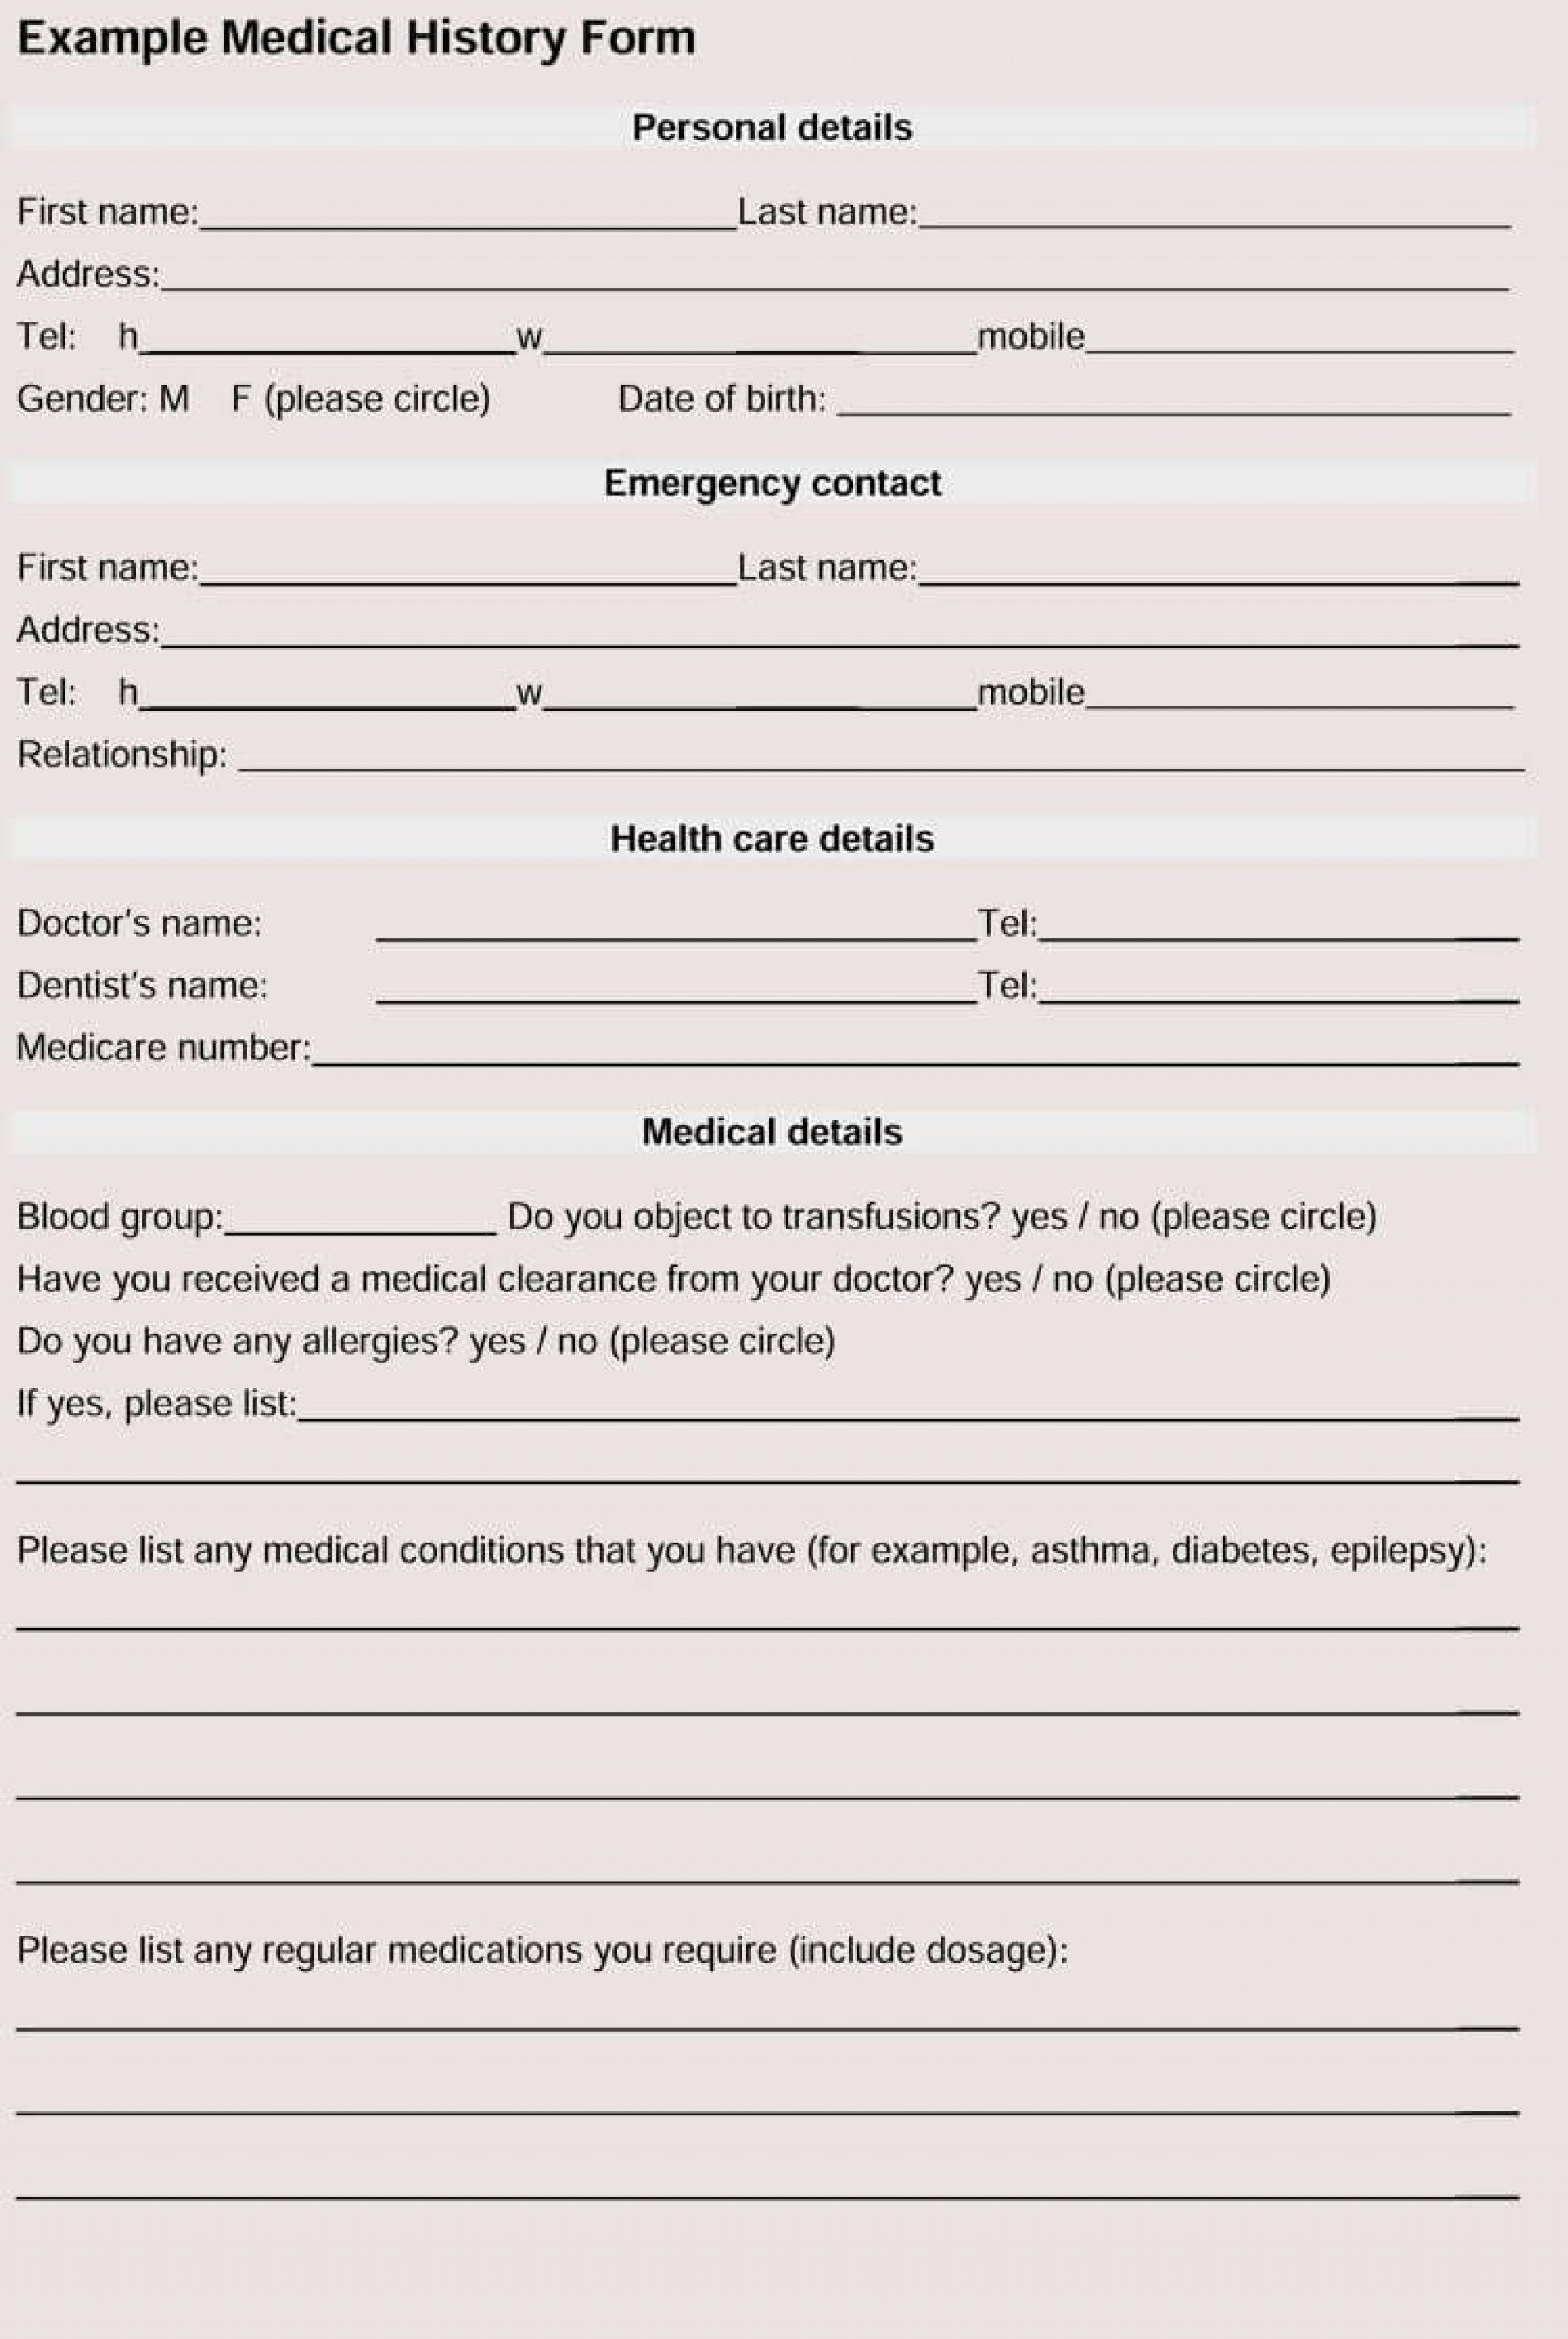 003 Top Family Medical History Template Photo  Questionnaire Free Excel1920